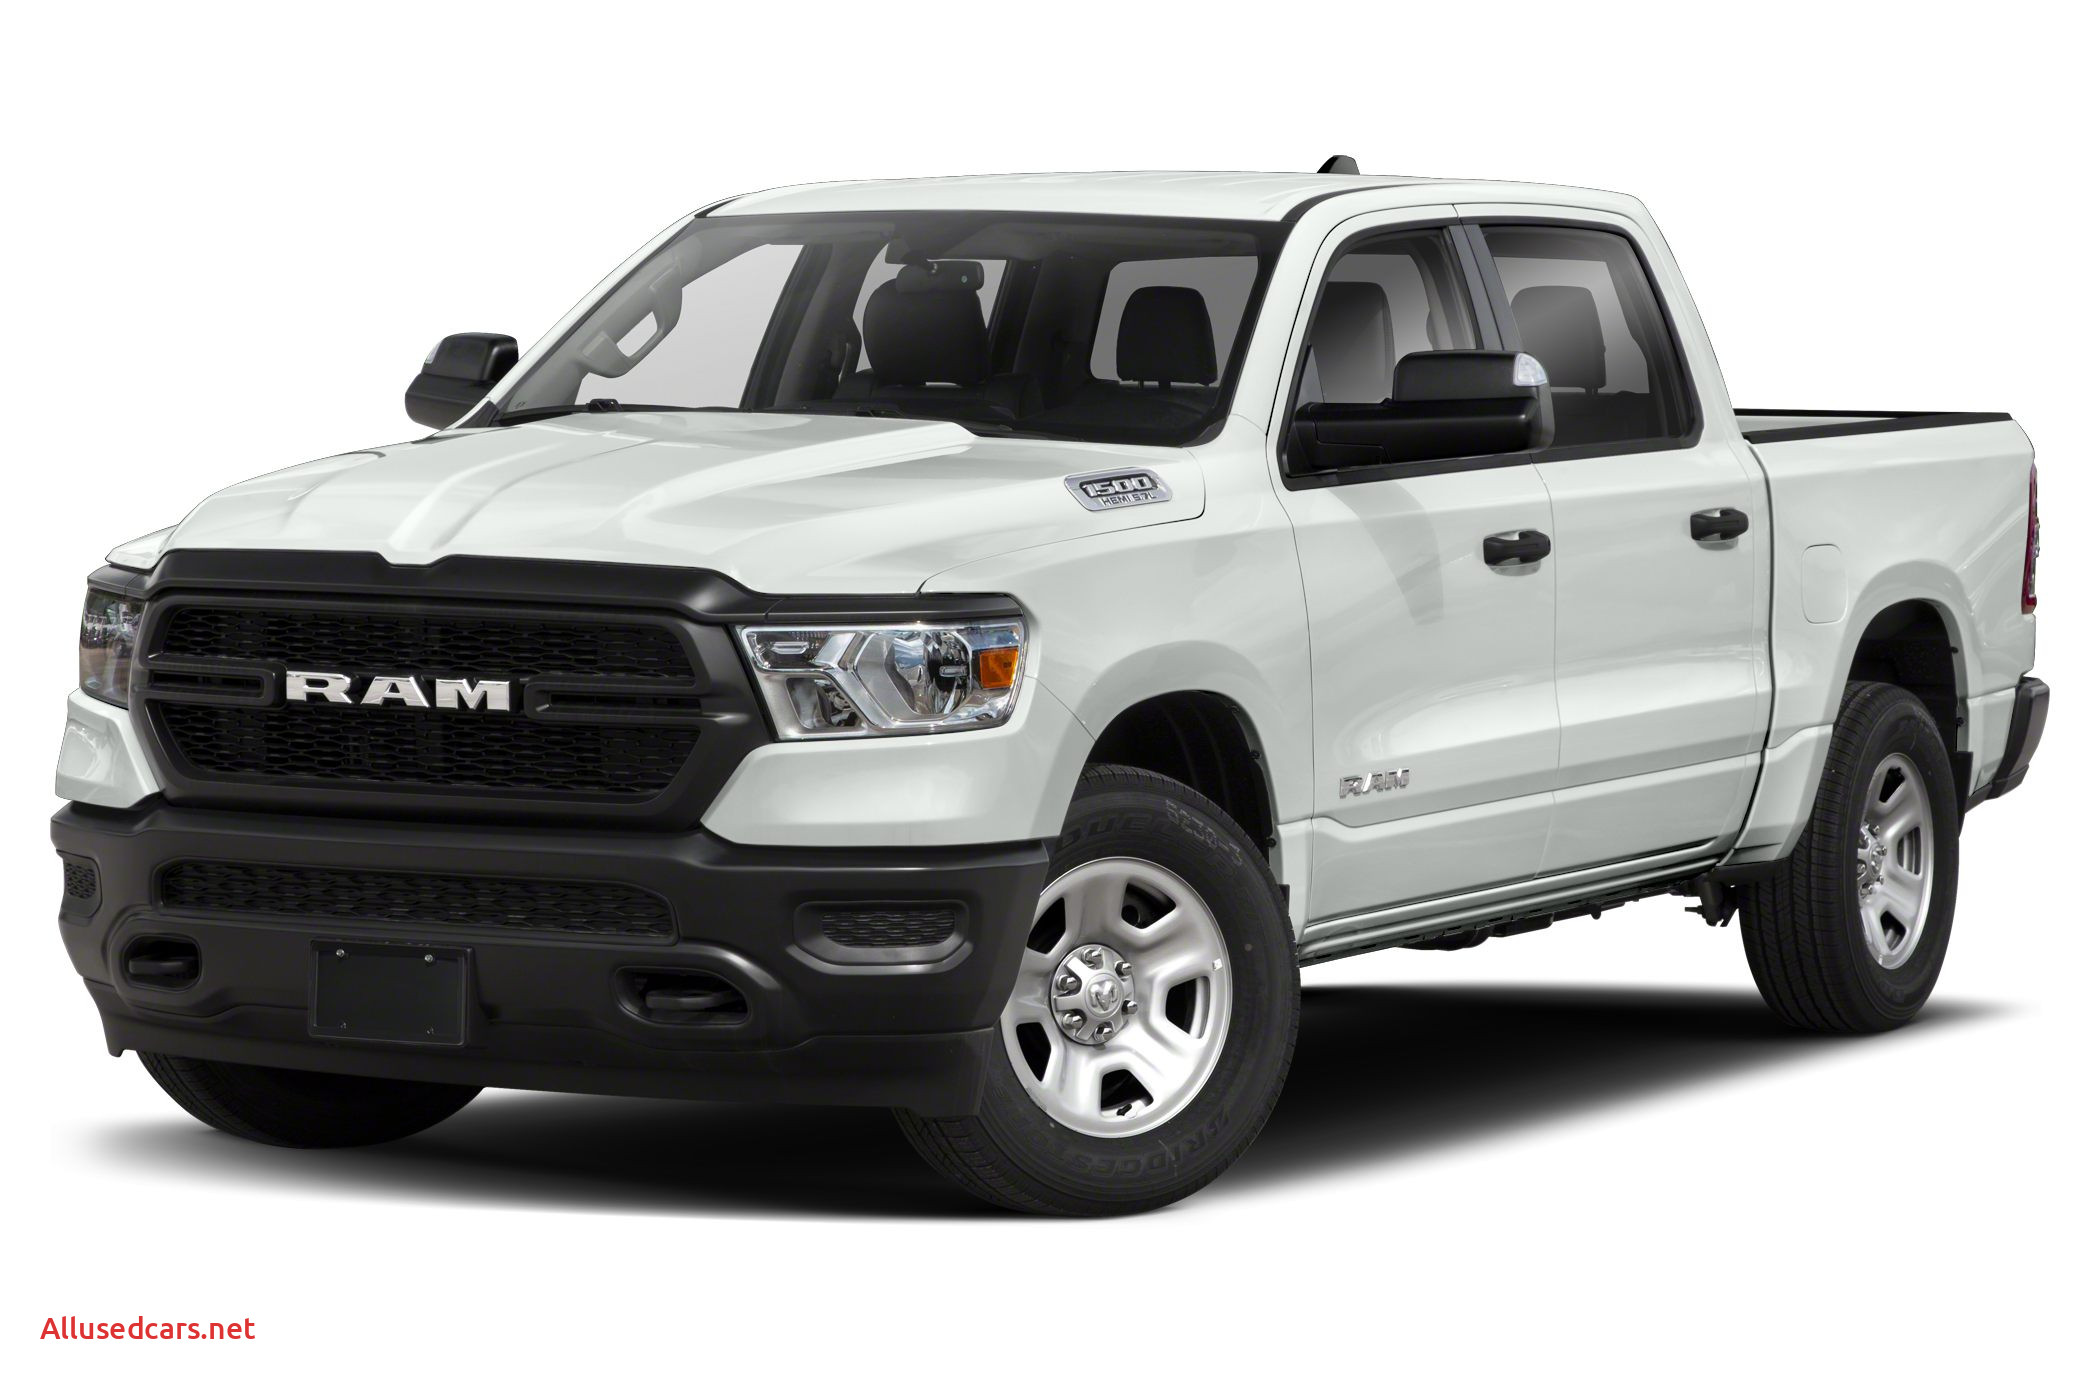 2012 Dodge Ram 1500 Best Of 2019 Ram 1500 Tradesman 4x2 Crew Cab 153 5 In Wb Specs and Prices